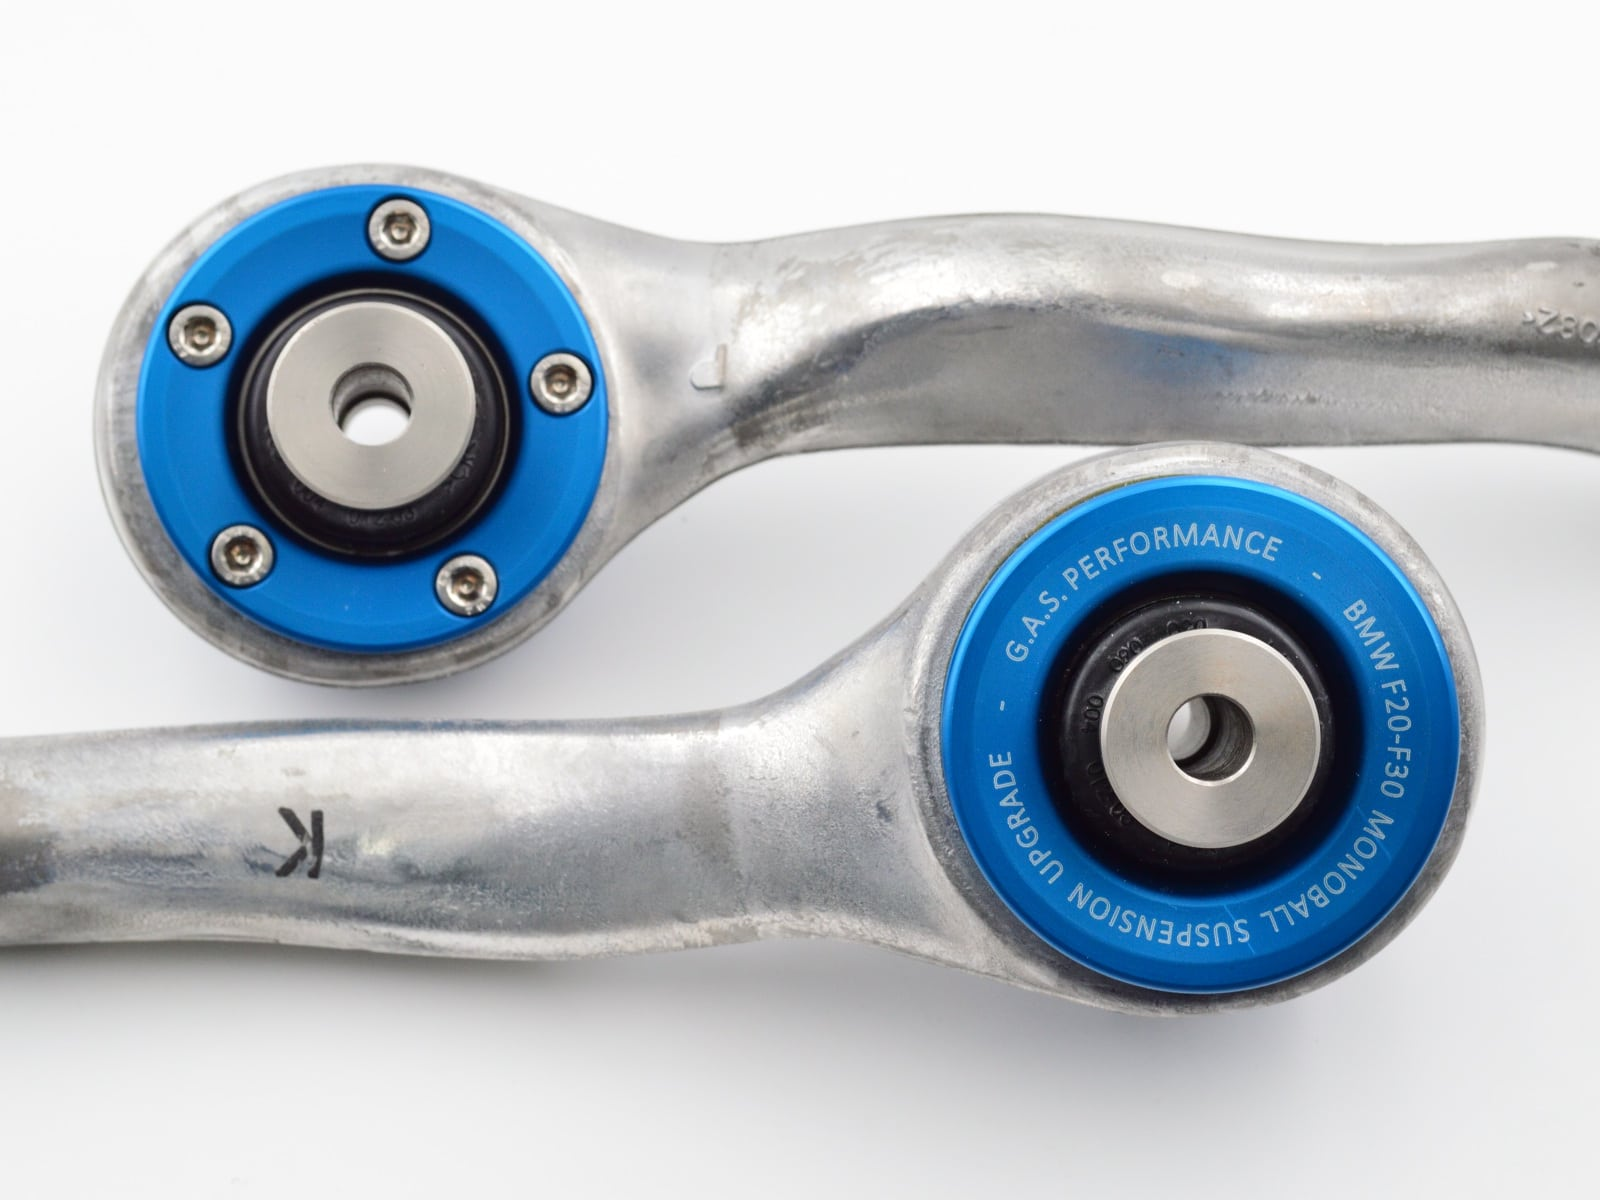 GAS BMW F20-F30 Monoballs Pre-installed into New Control Arms